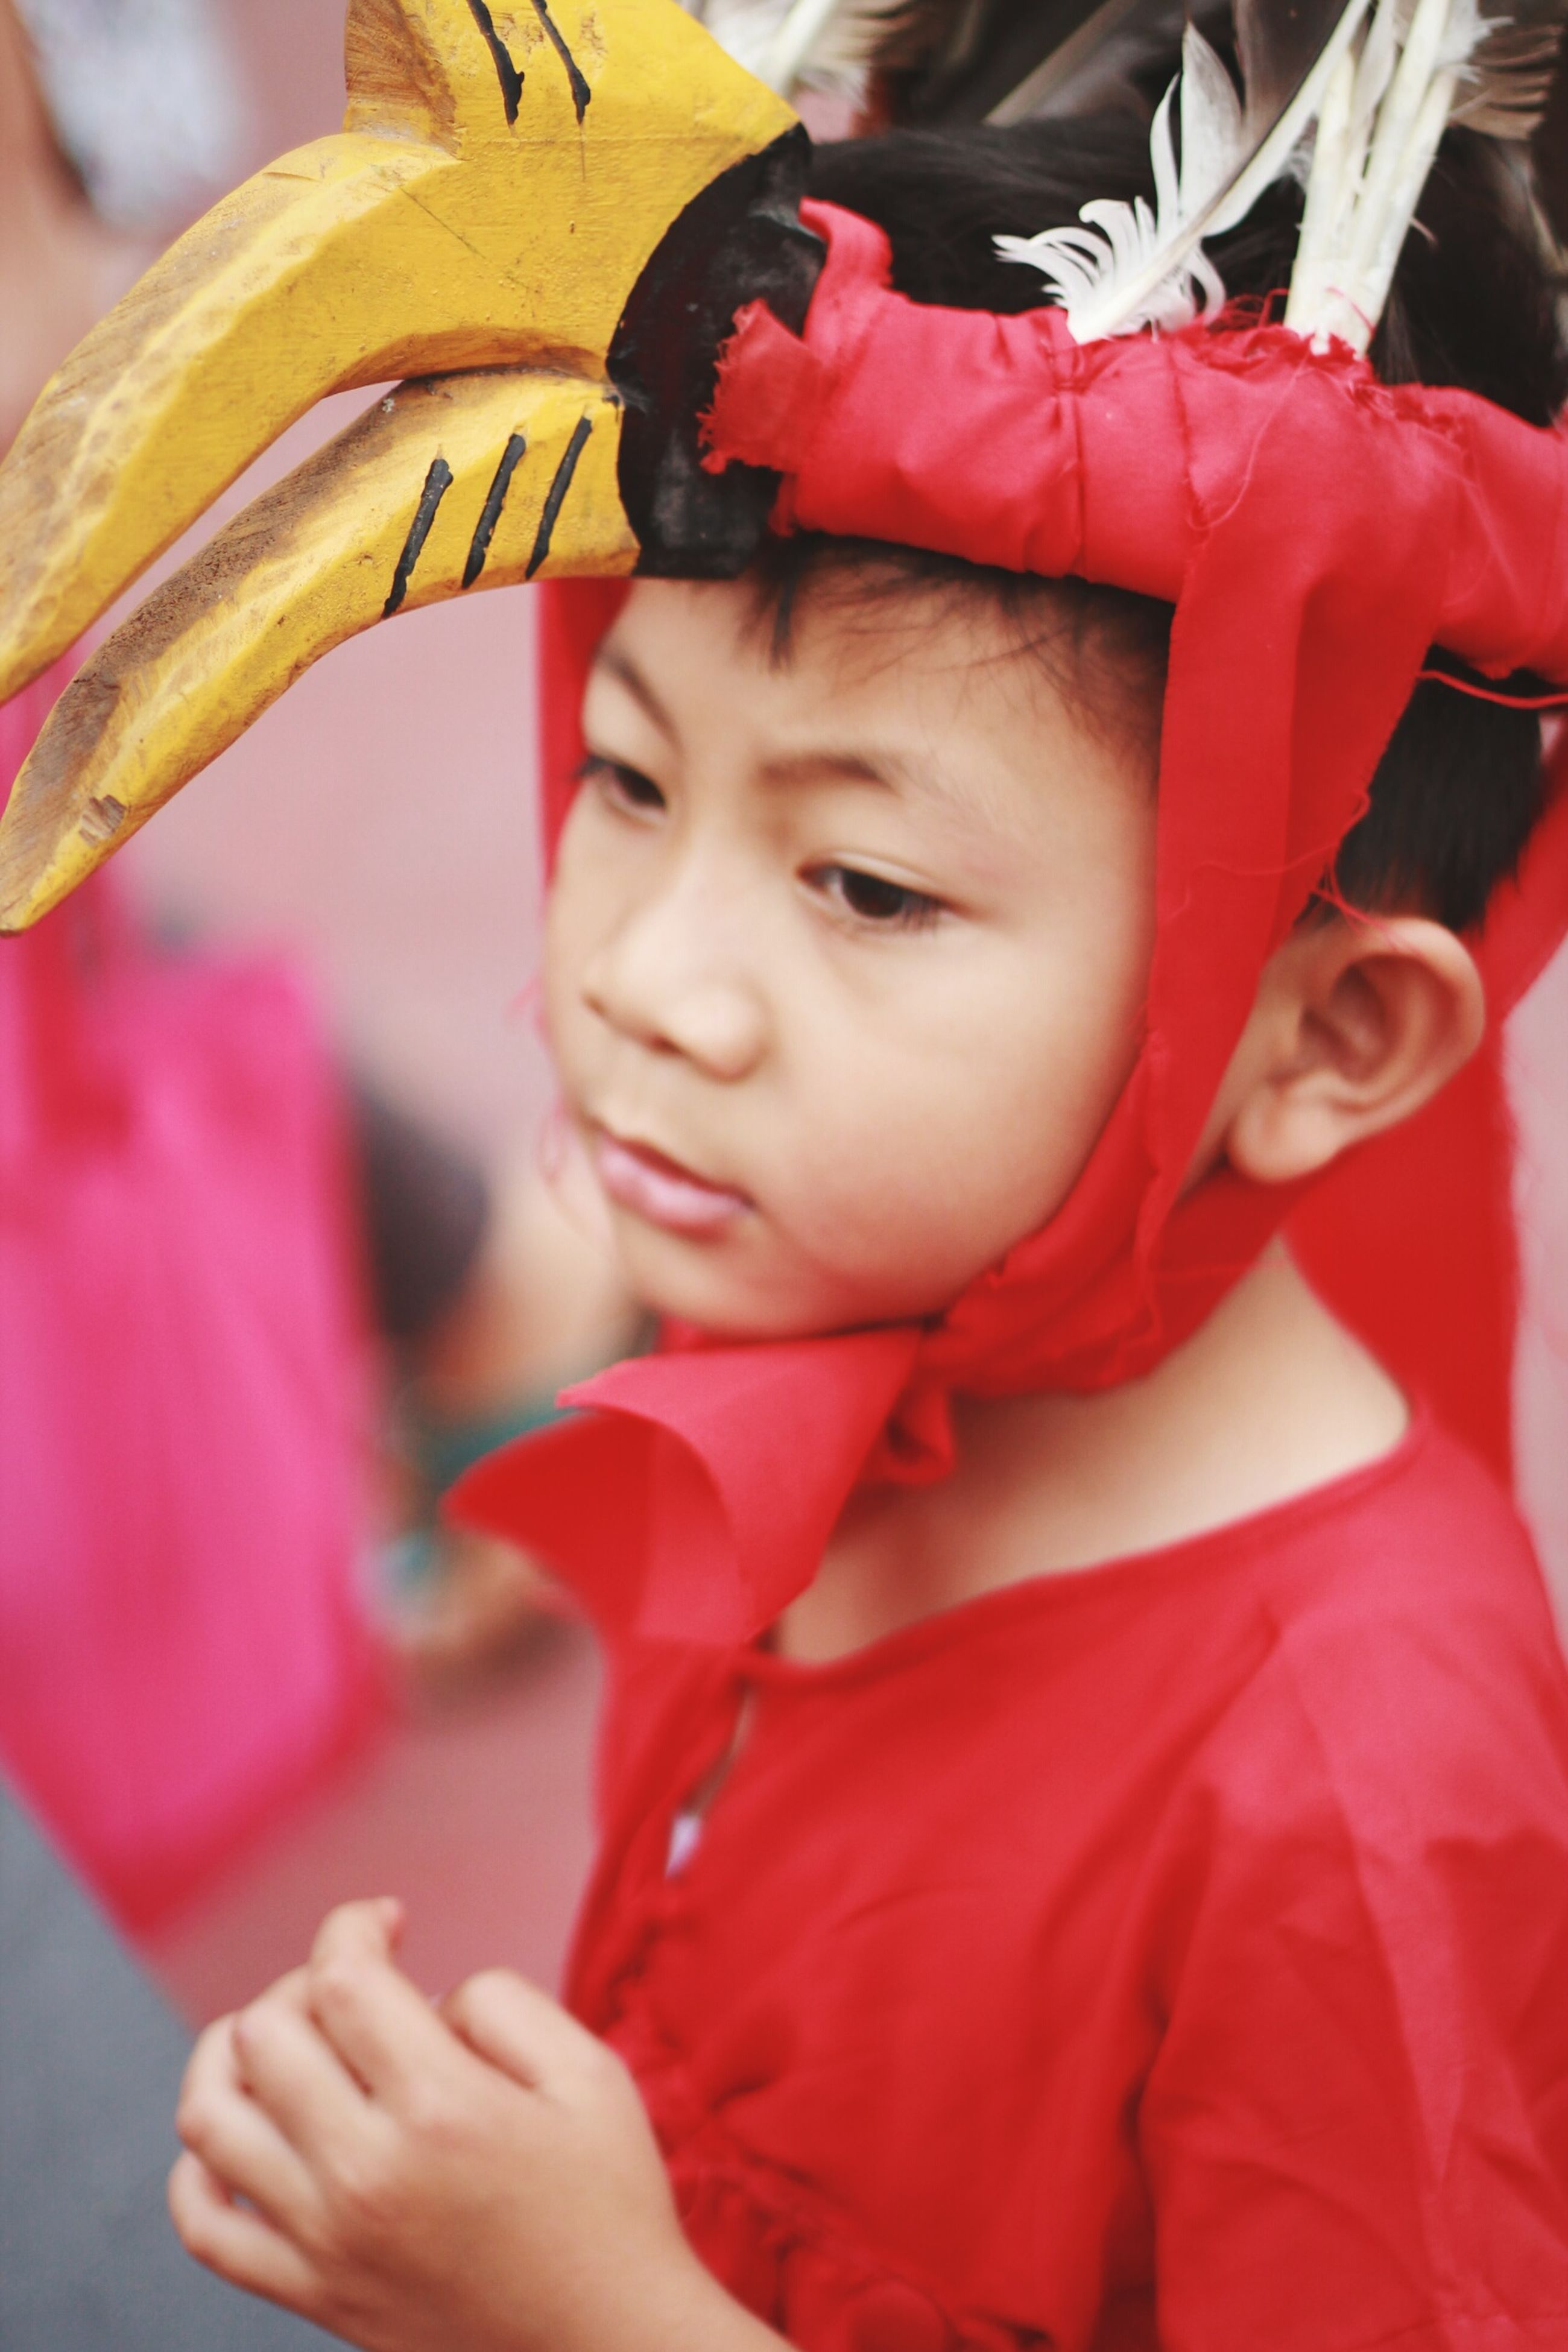 childhood, holding, elementary age, lifestyles, focus on foreground, leisure activity, girls, boys, innocence, cute, person, close-up, casual clothing, headshot, red, front view, incidental people